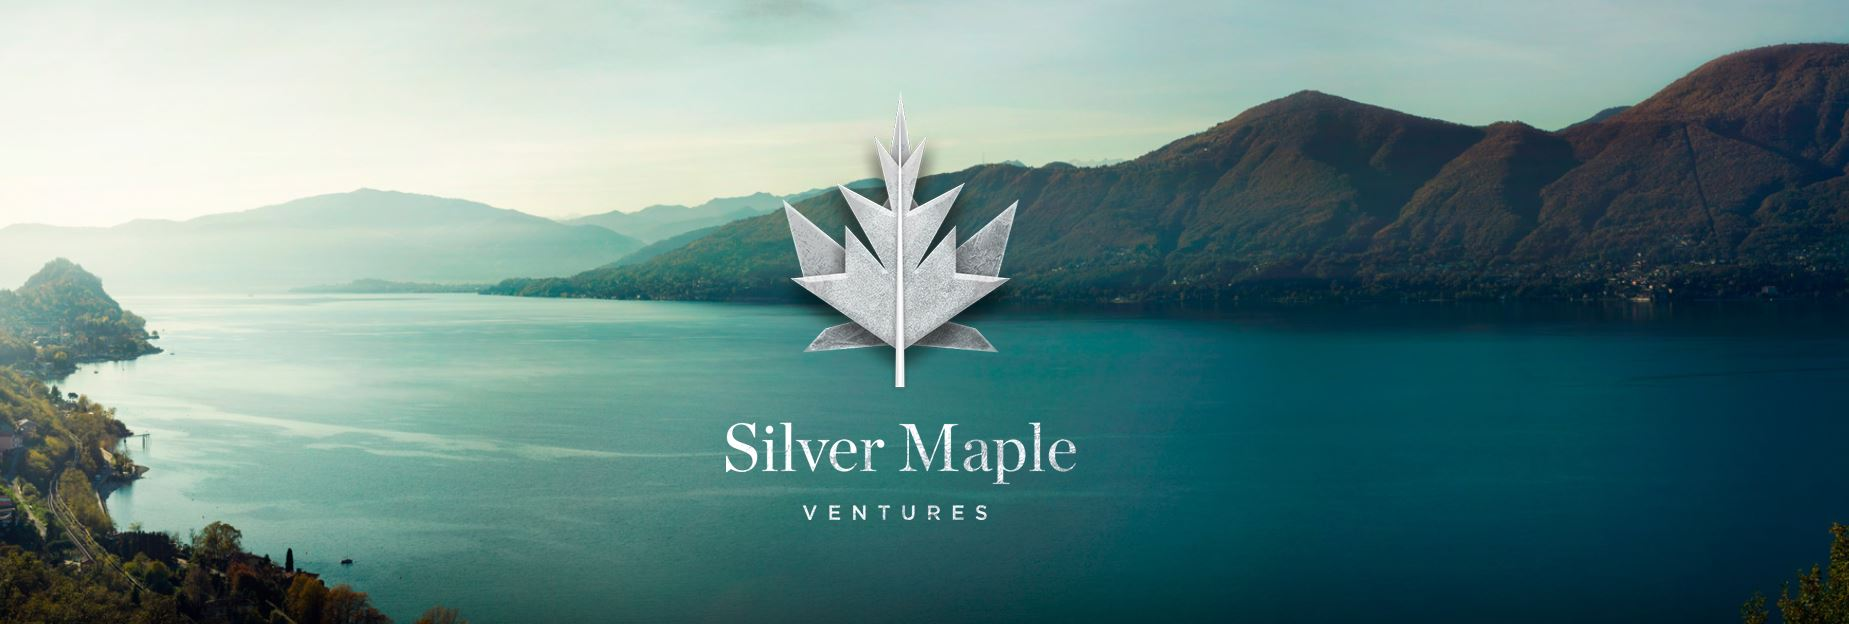 Equity Crowd Funding Silver Maple Ventures